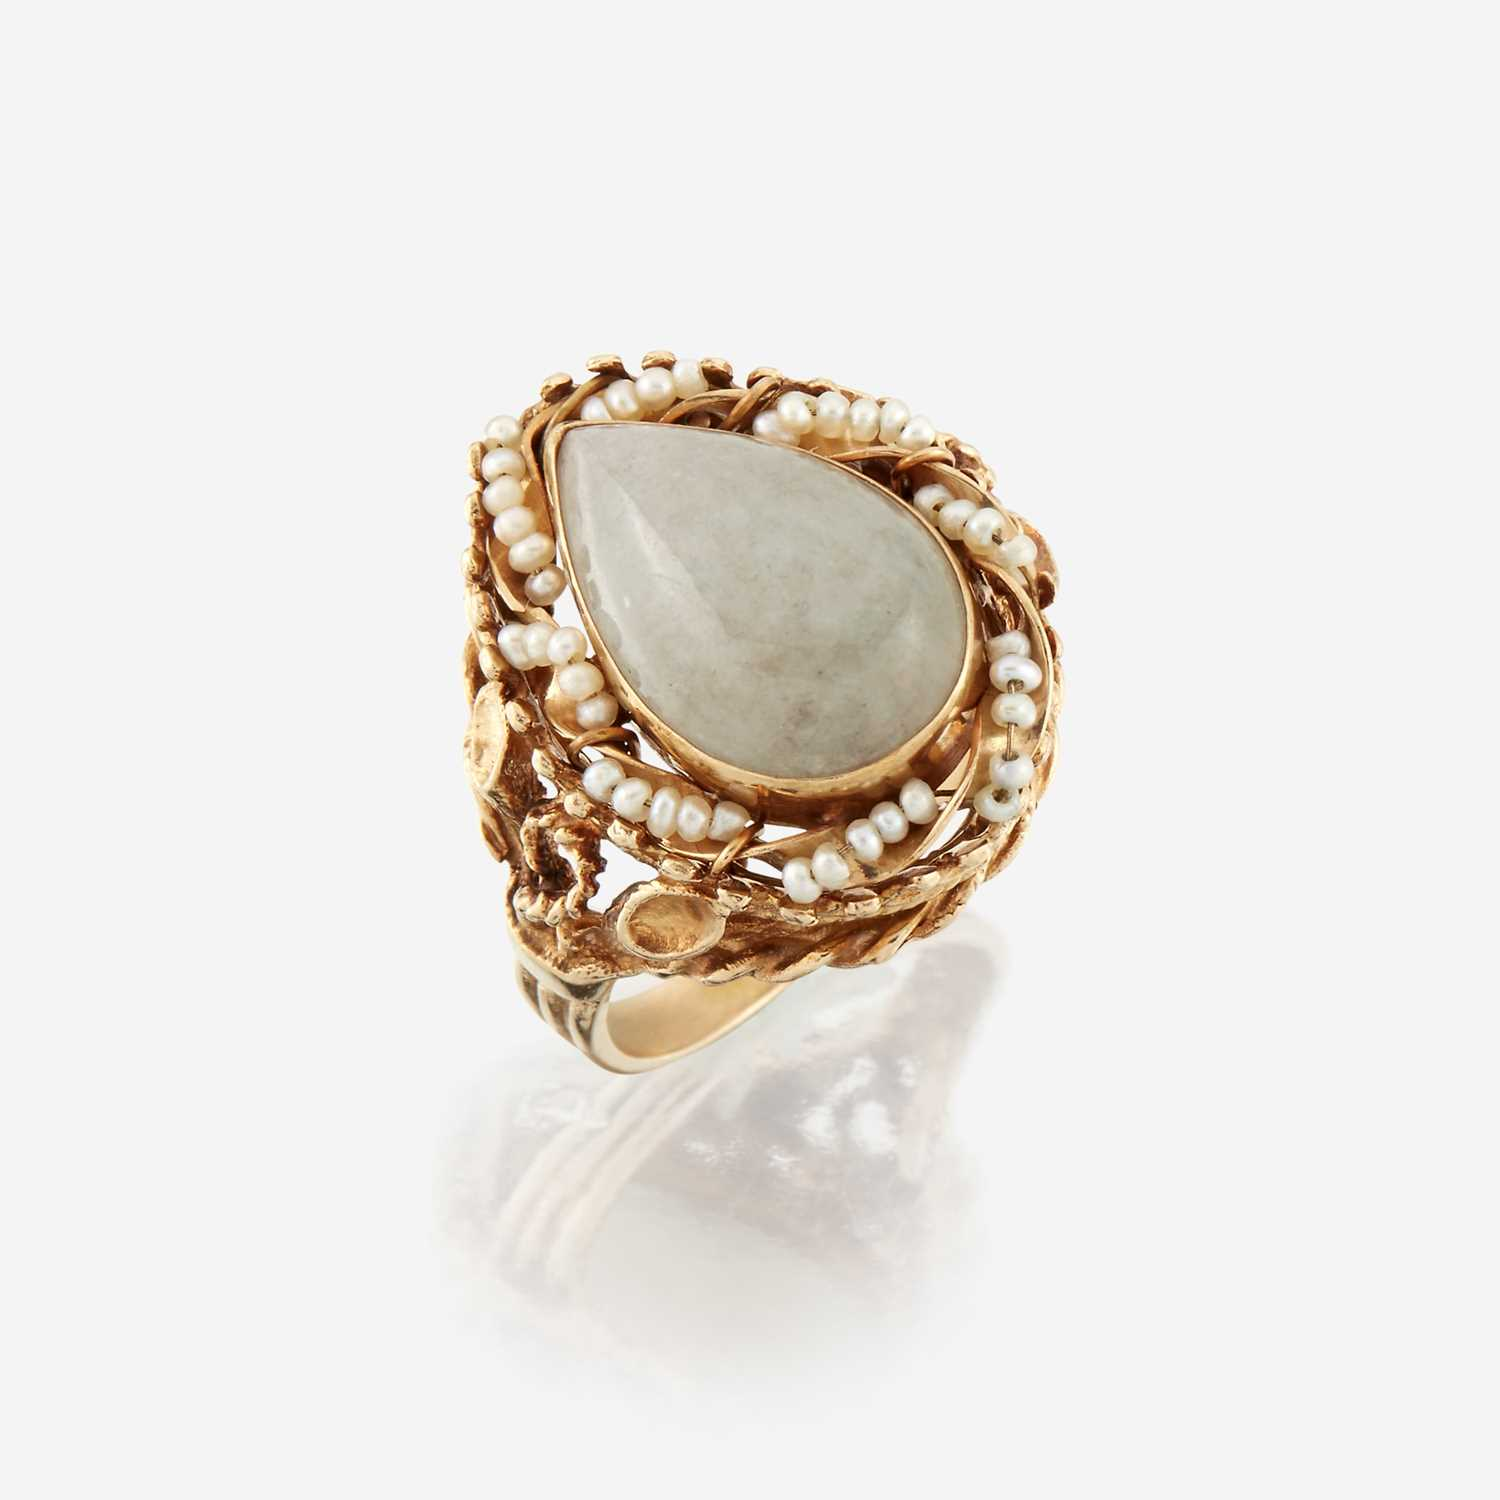 Lot 23 - A jade, seed pearl, and fourteen karat gold ring